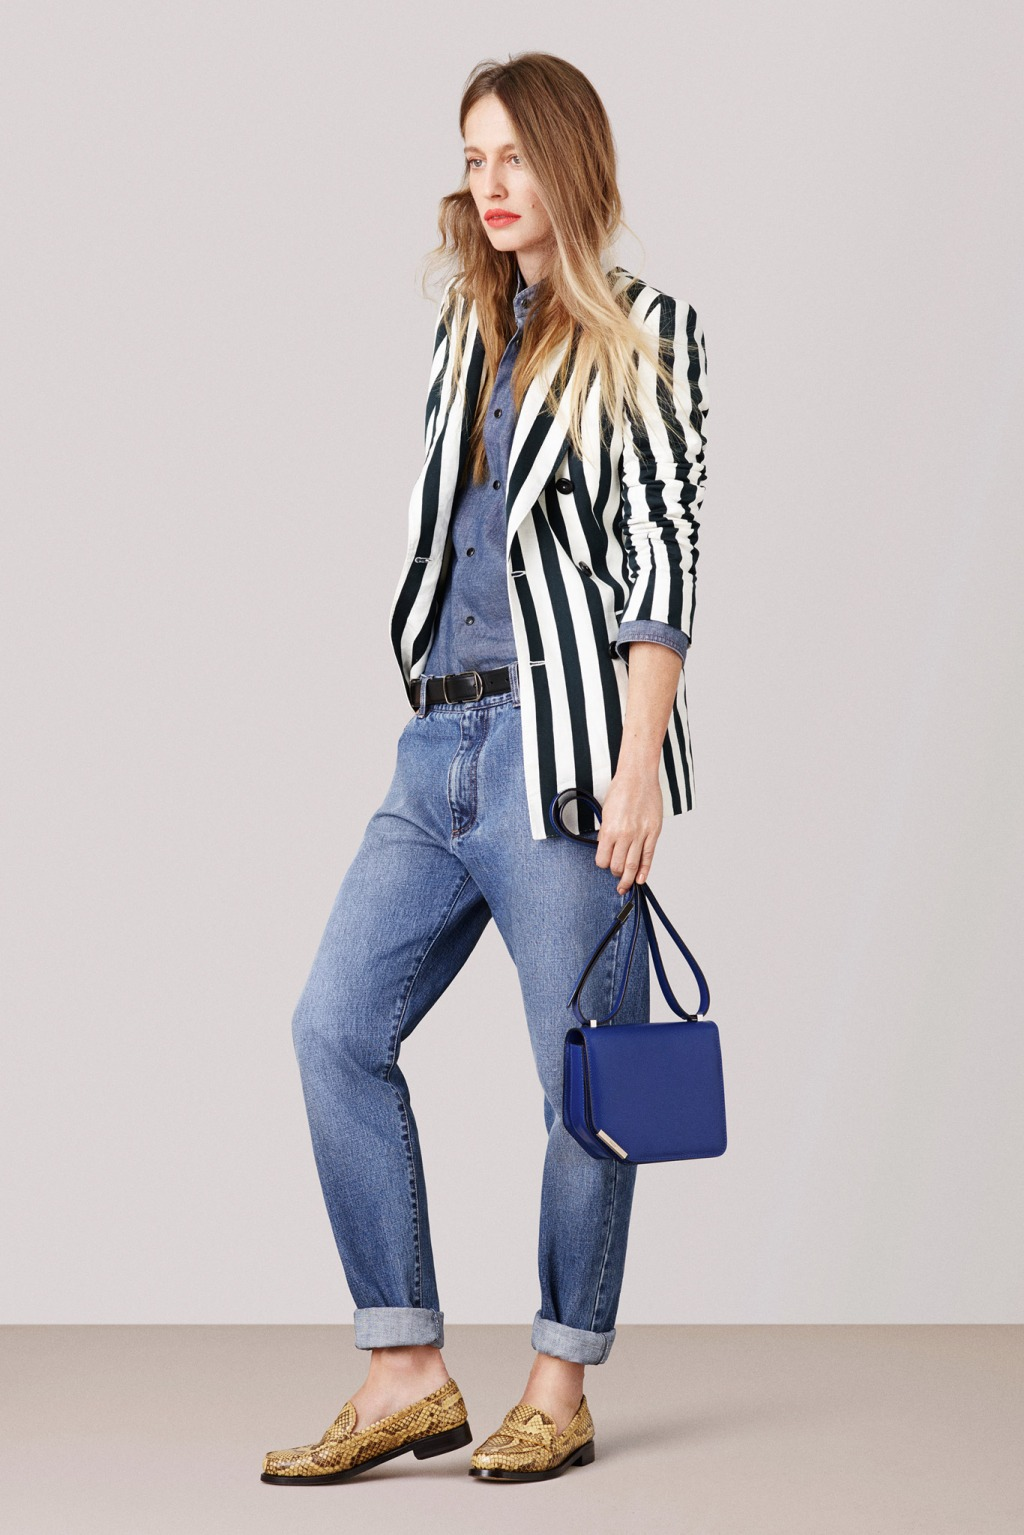 BALLY DOUBLE DENIM MODEL SPRING SUMMER 2015 FASHION WEEK